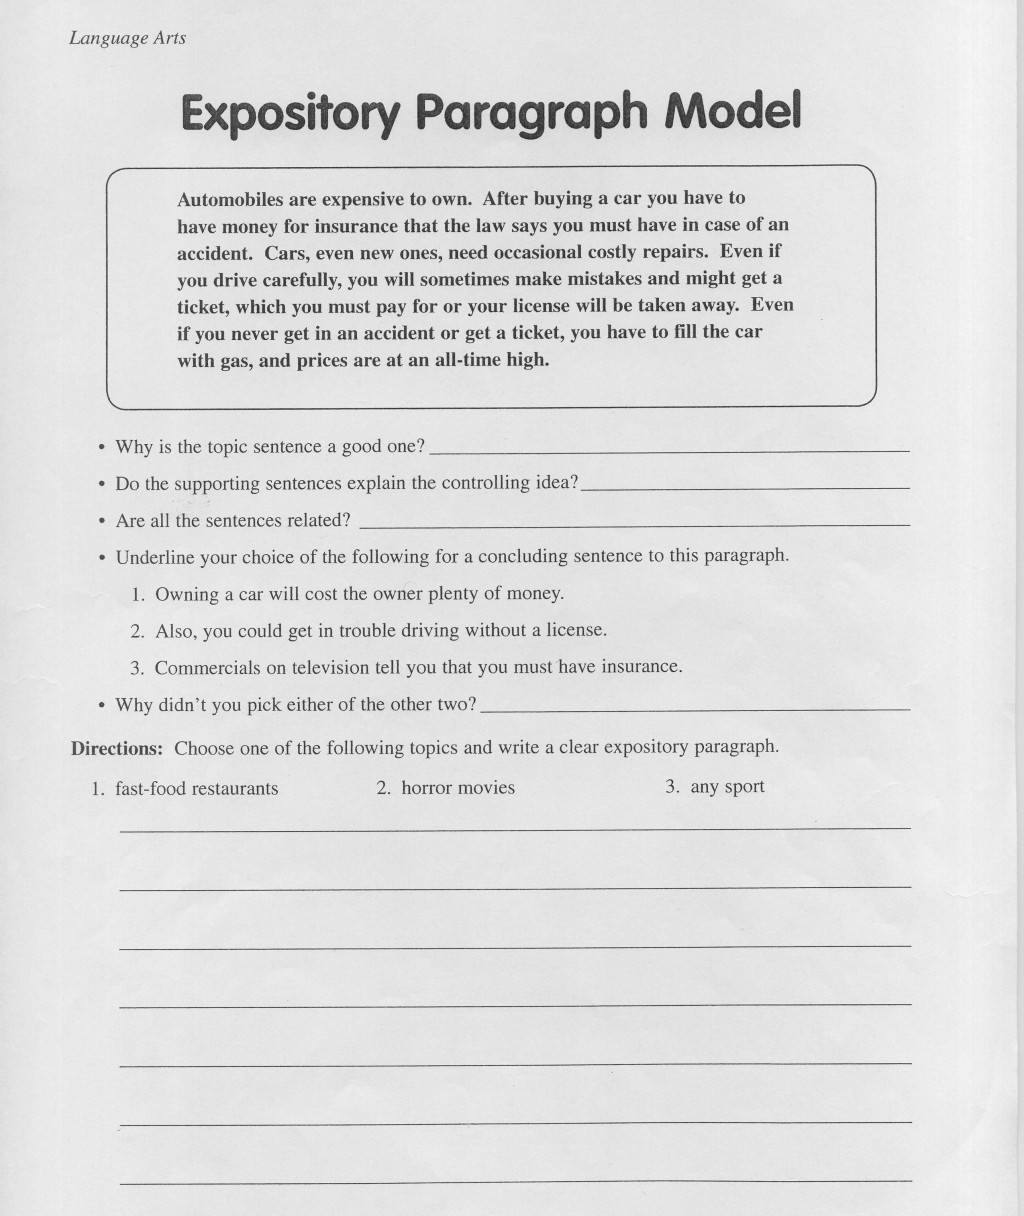 011 Essay Example Expository Awesome Topics For 4th Grade Prompt High School Prompts 7th Large